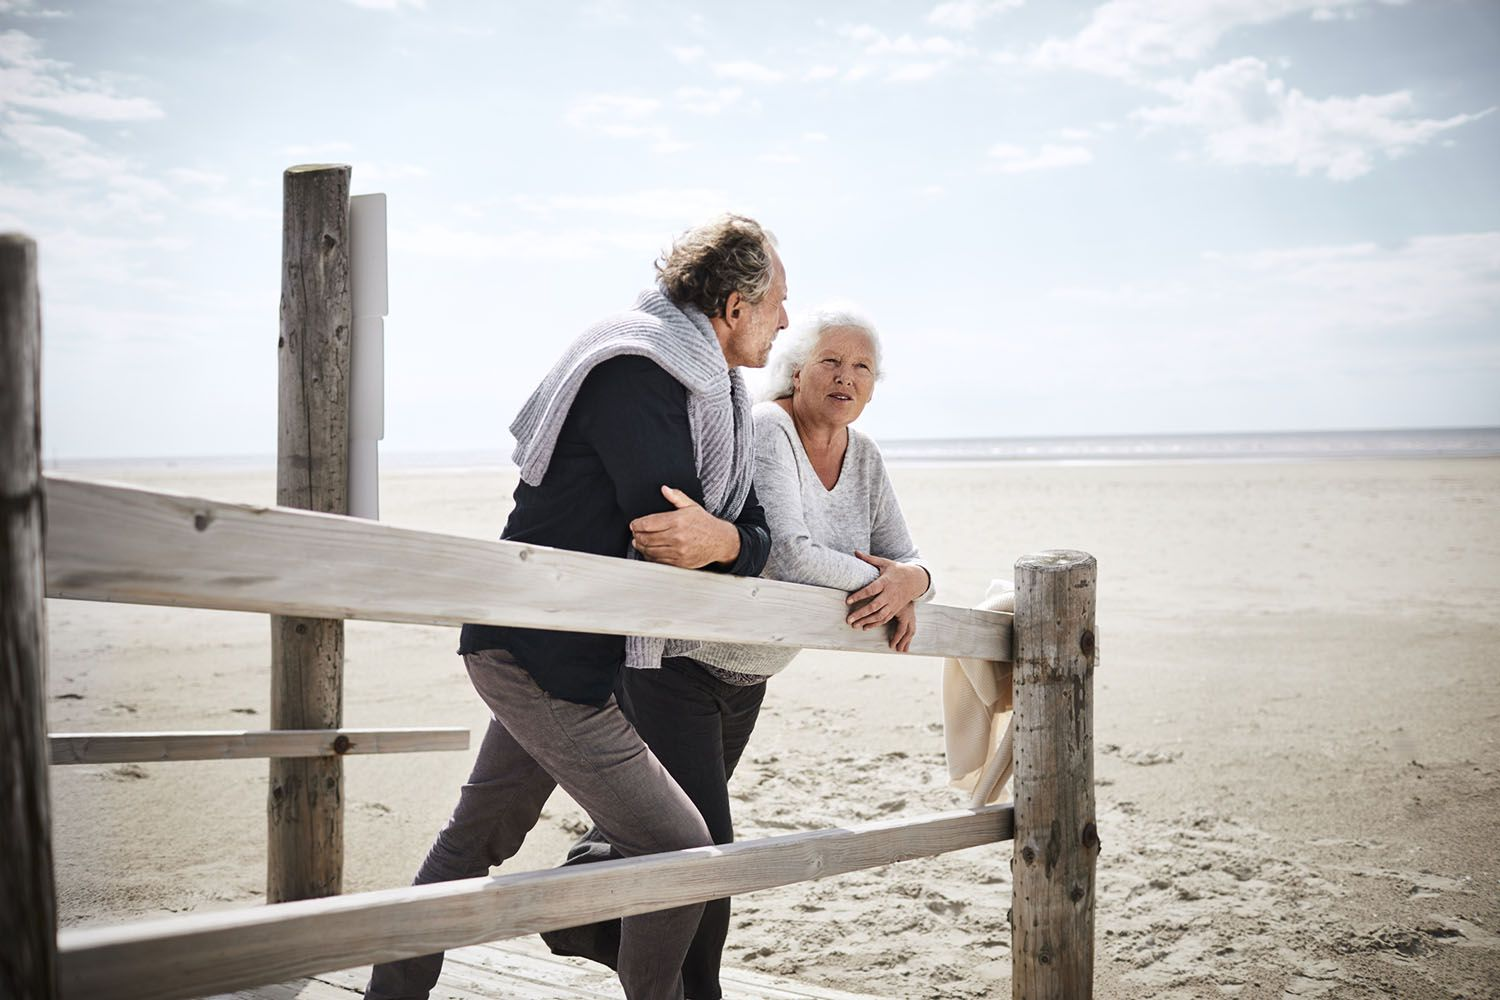 Best Health Insurance Companies for Retirees of 2021